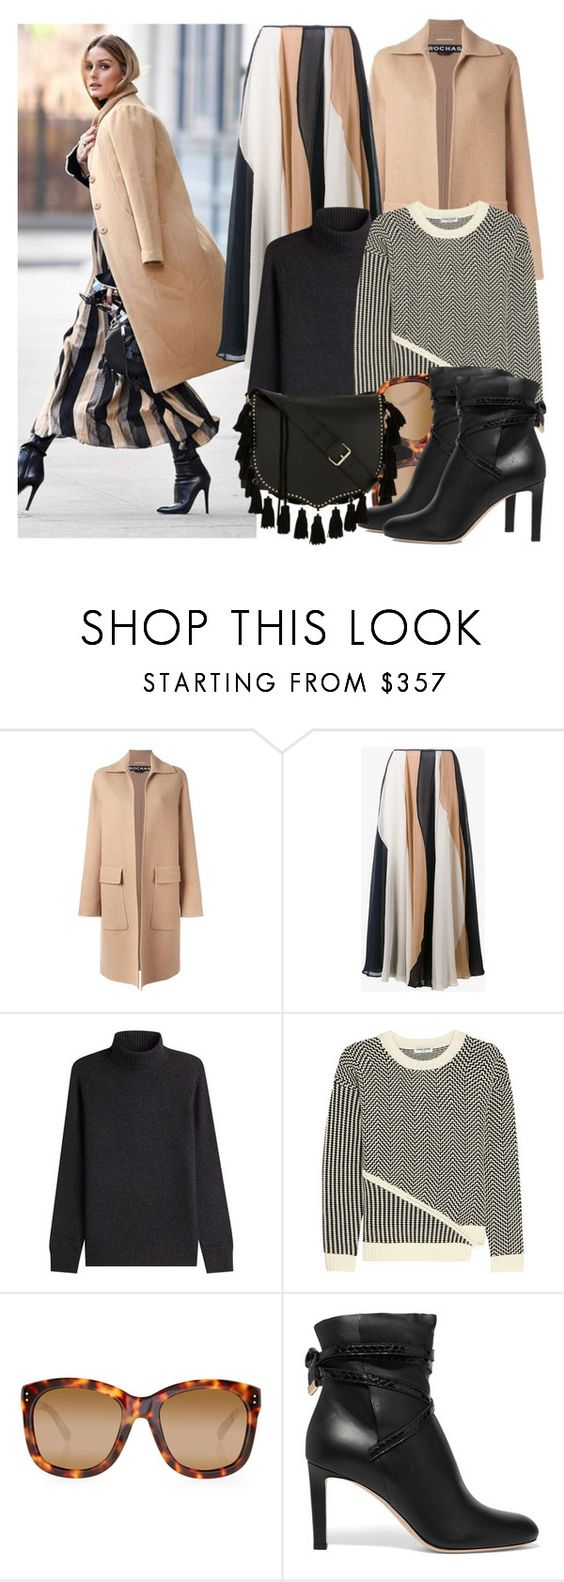 """Olivia Palermo"" by justadream133 ❤ liked on Polyvore featuring Rochas, Roksanda, Vince, Opening Ceremony, Linda Farrow, Jimmy Choo, Rebecca Minkoff and OliviaPalermo"